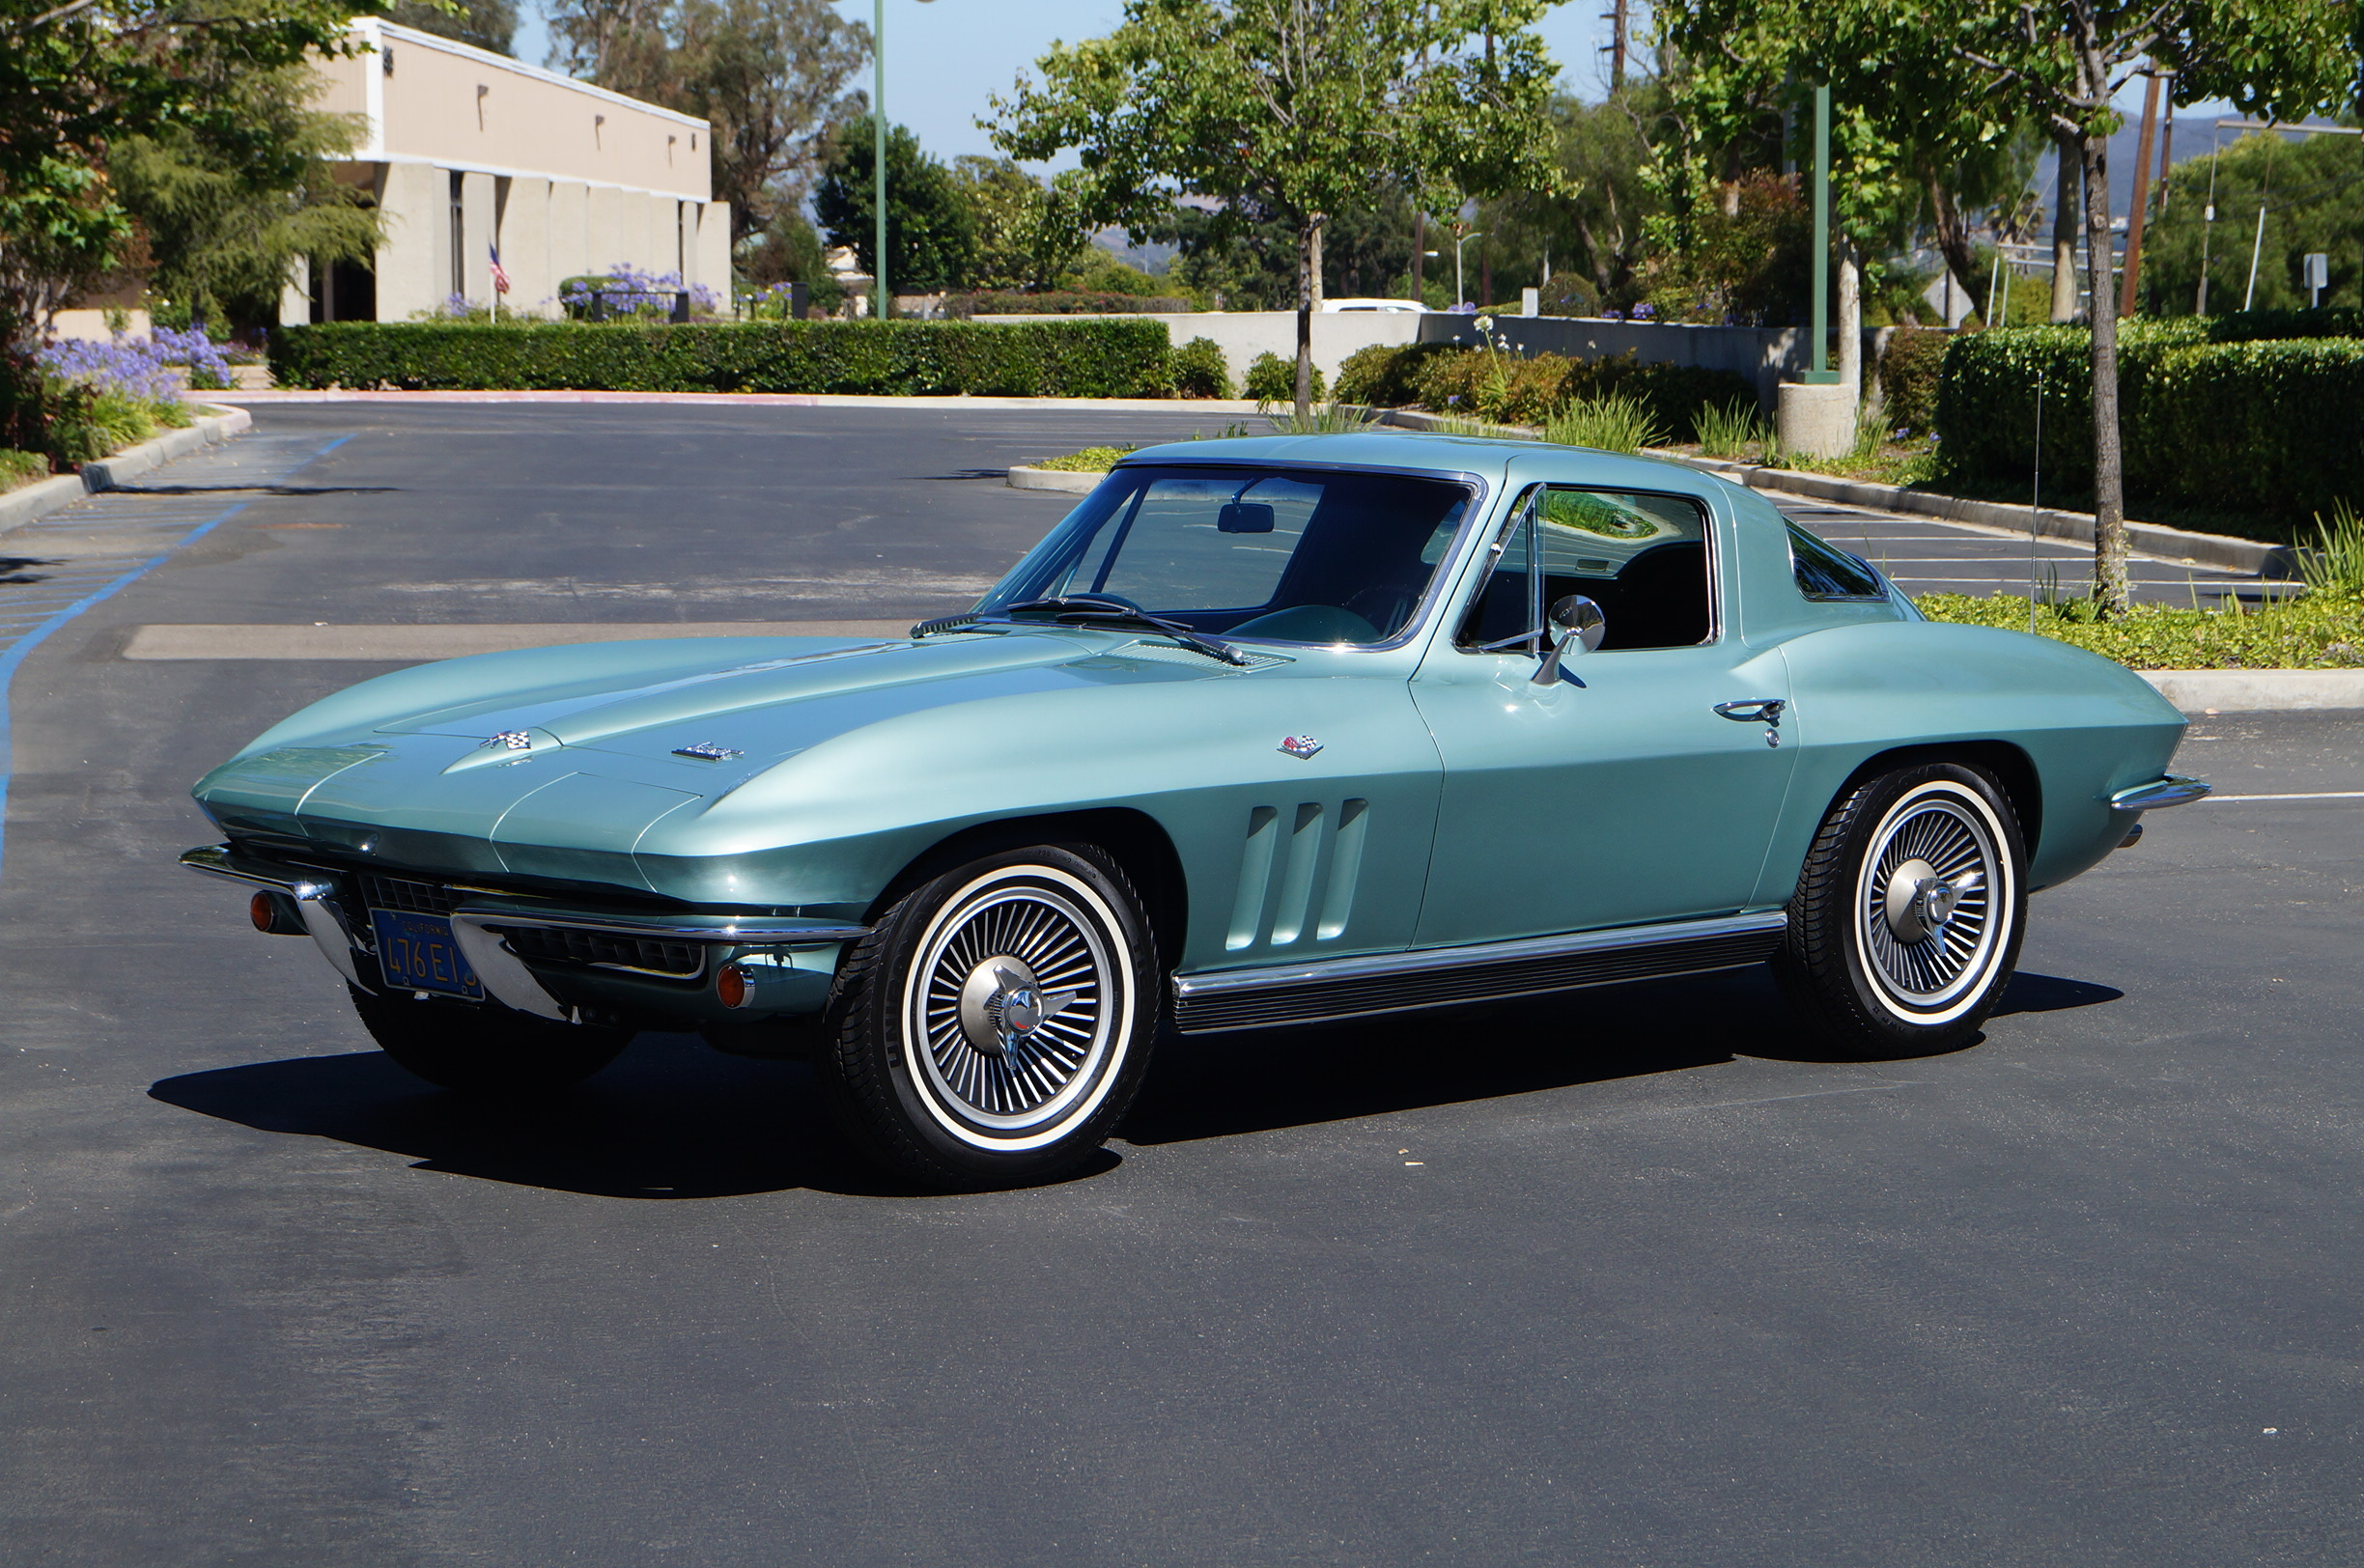 Green 1966 Chevrolet Corvette Coupe